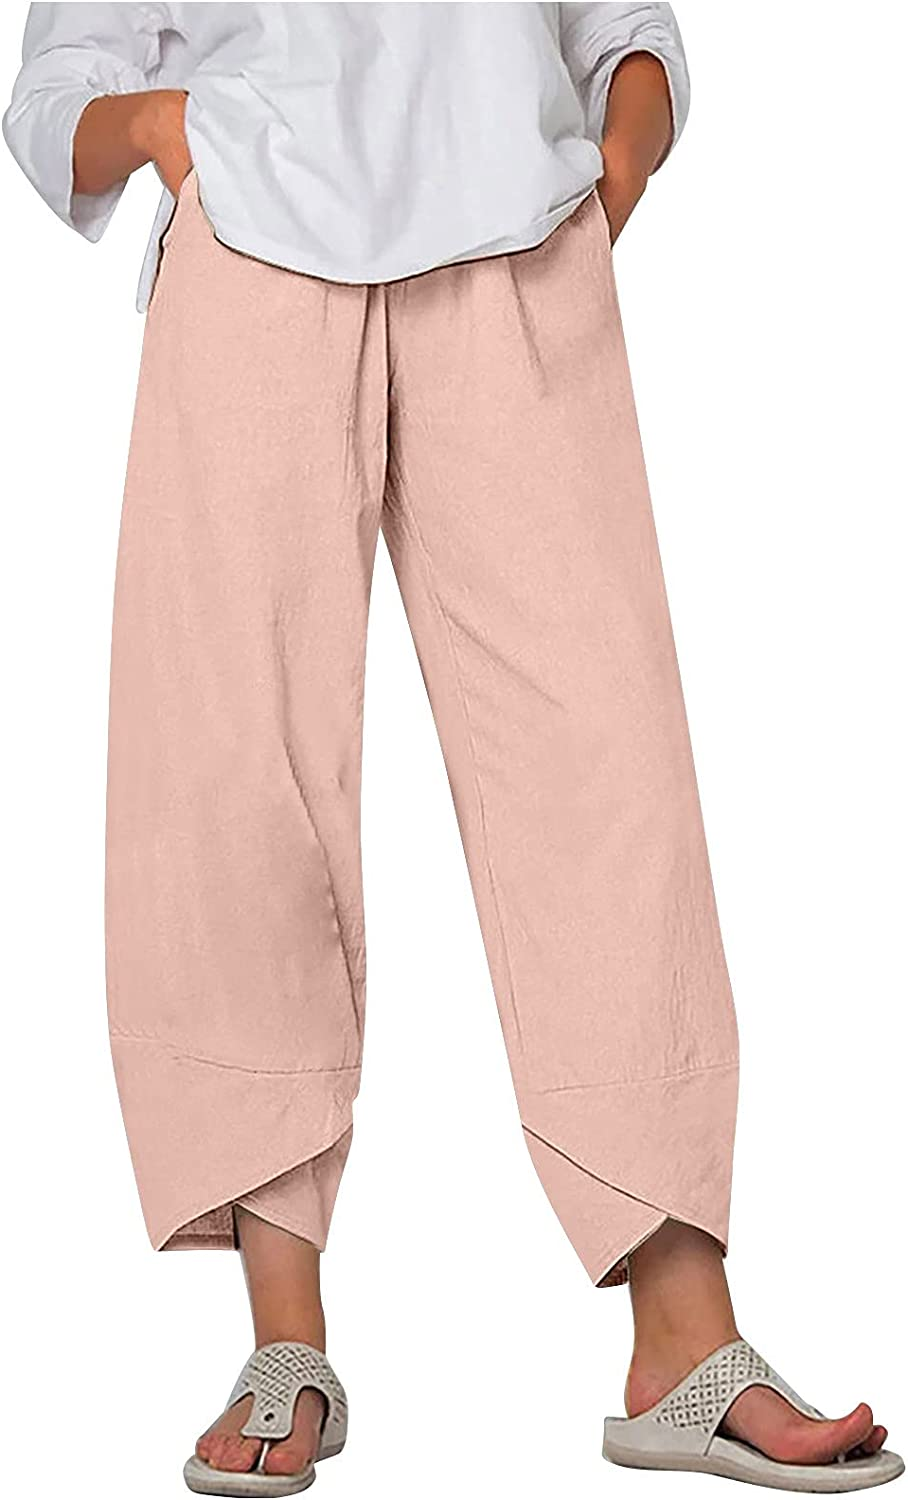 Womens Linen Cotton Pants,Summer Casual Pure Lounge Trousers Trendy High Waist Comfy Wide Leg Cropped Straight Pants